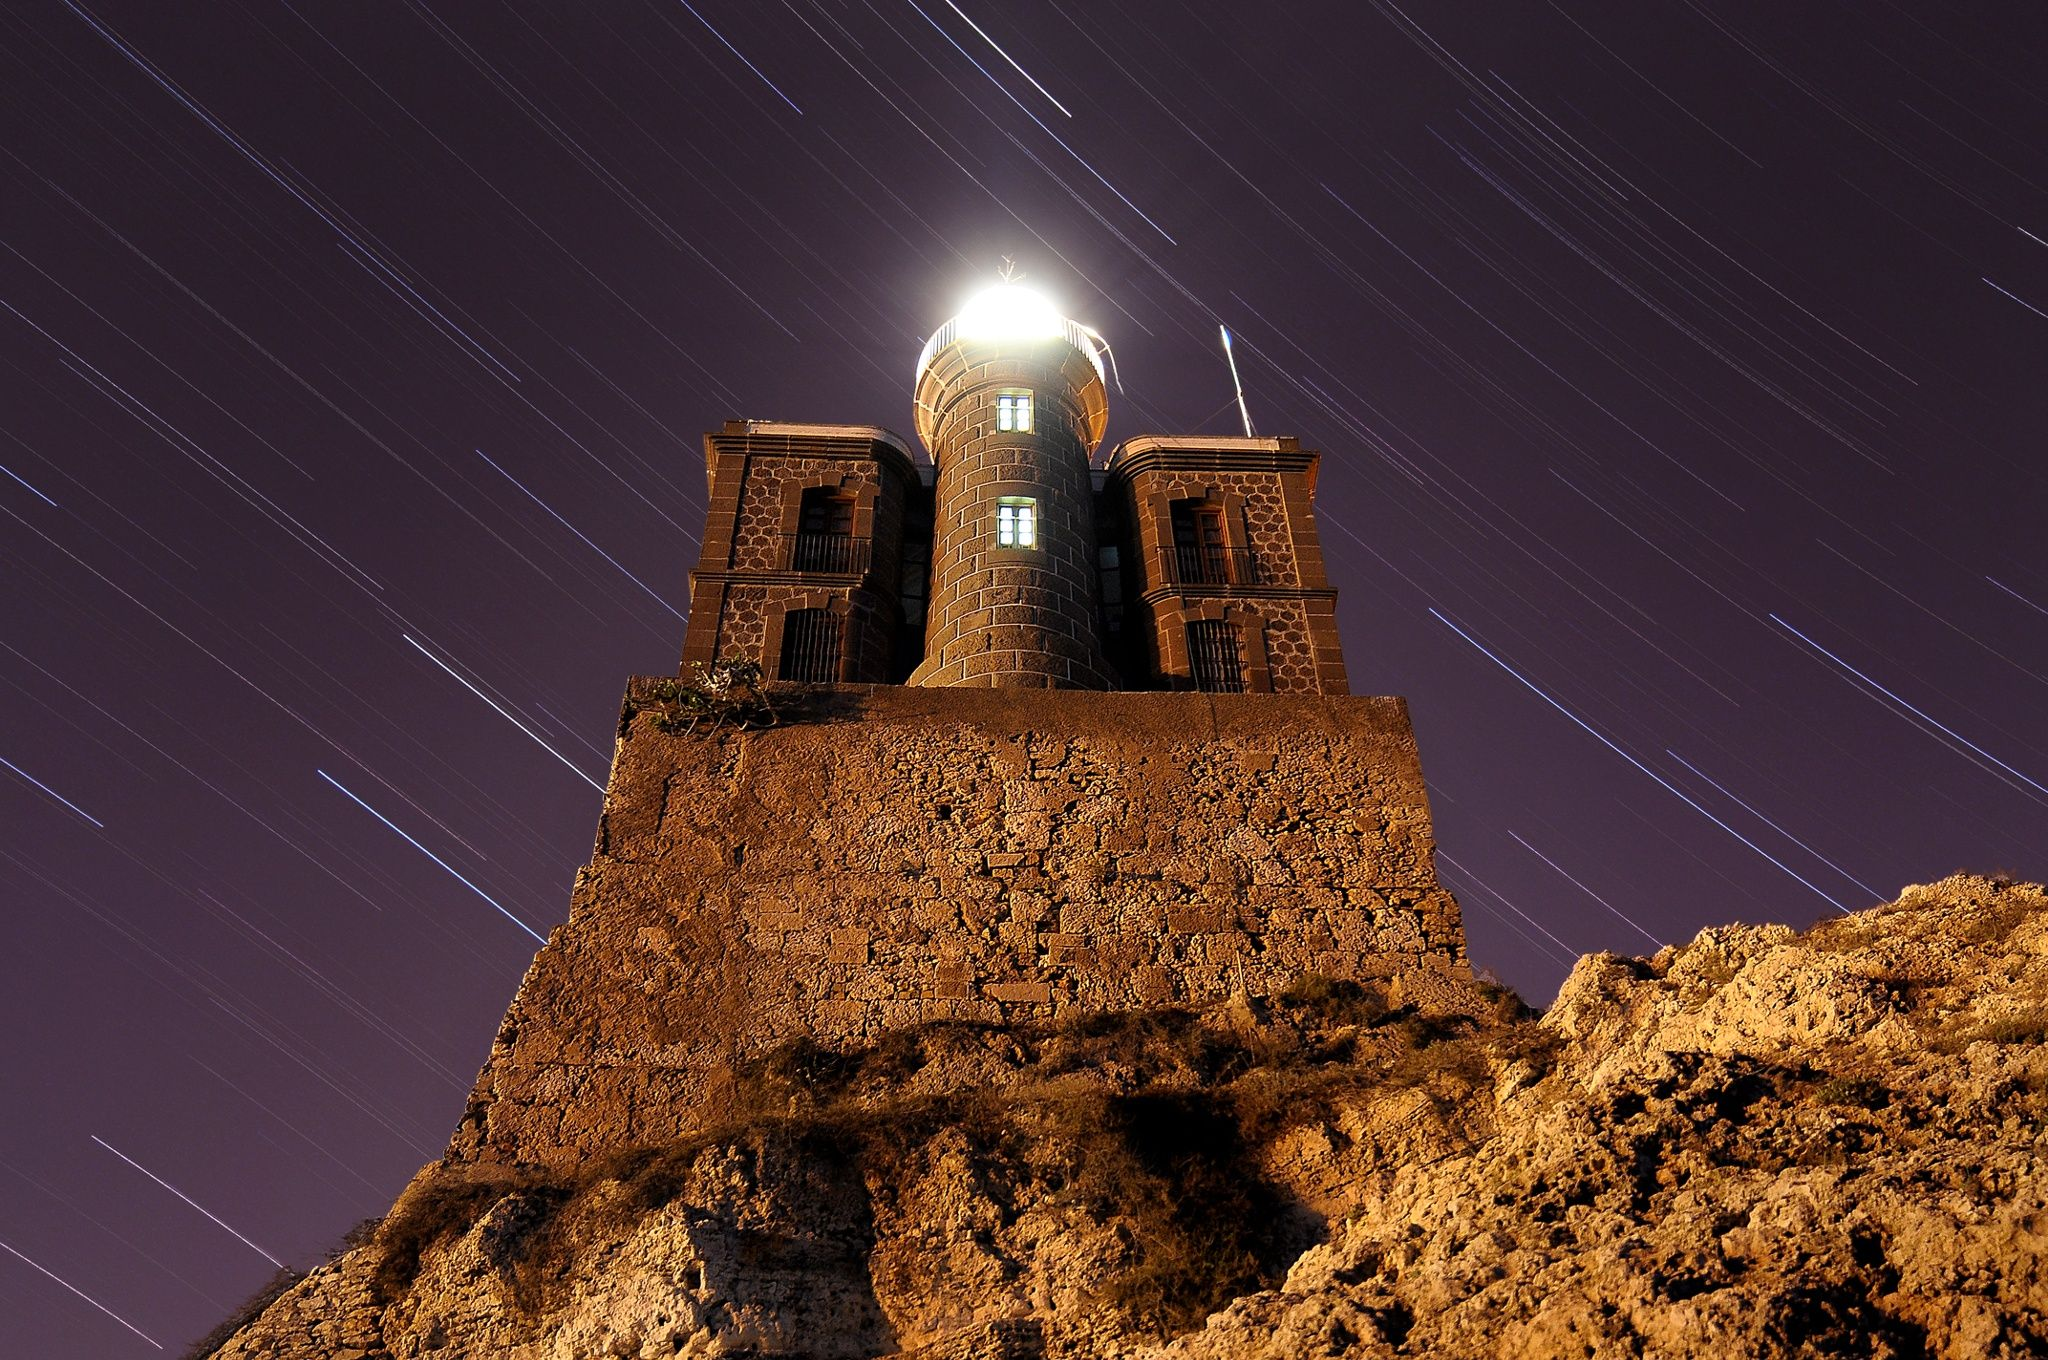 Un mar de estrellas guiadas por el faro Un Mar De Estrellas Guiadas Por El Faro (A Sea Of Stars Guided By The Lighthouse) | Spain | Photo By Jorge Caña